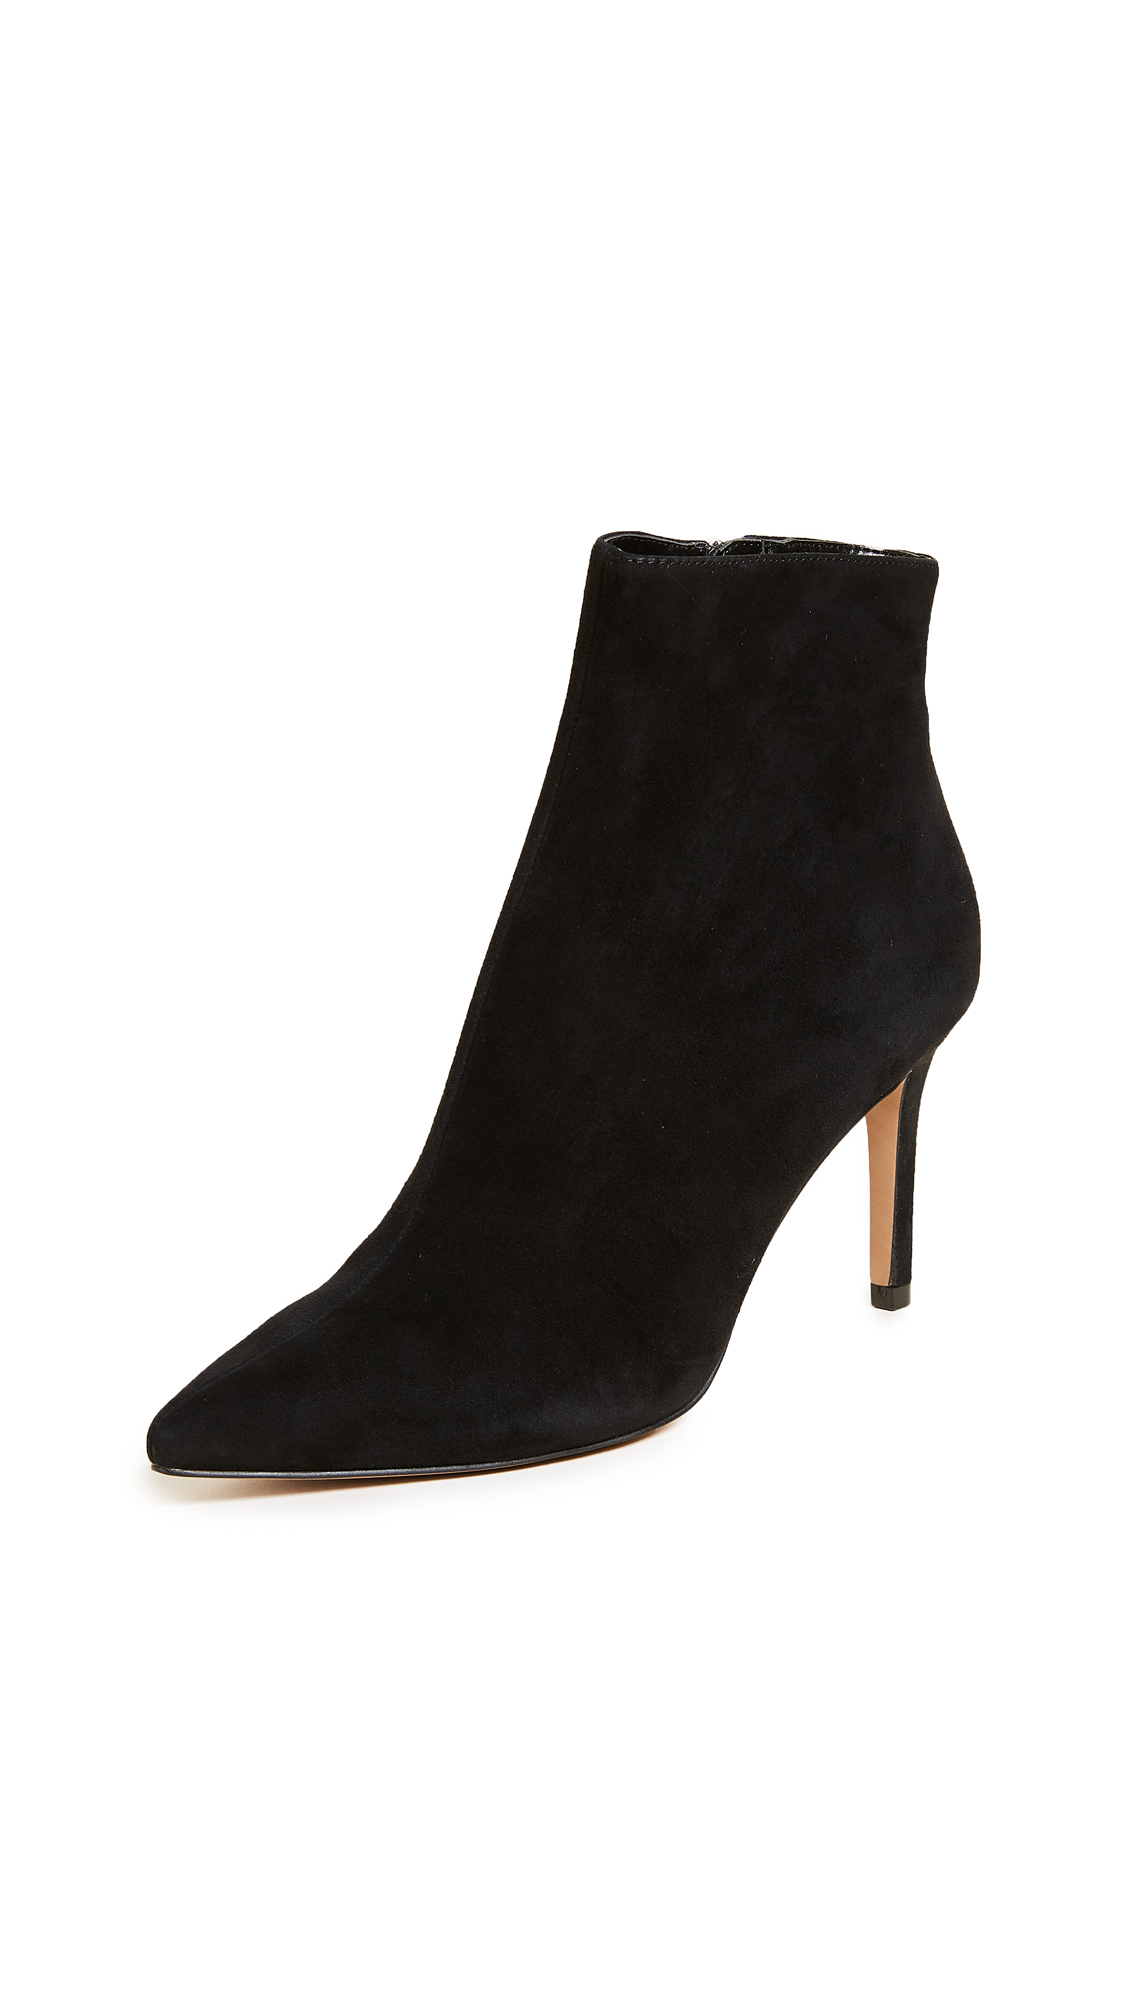 Steven Logic Point Toe Ankle Boots - Black